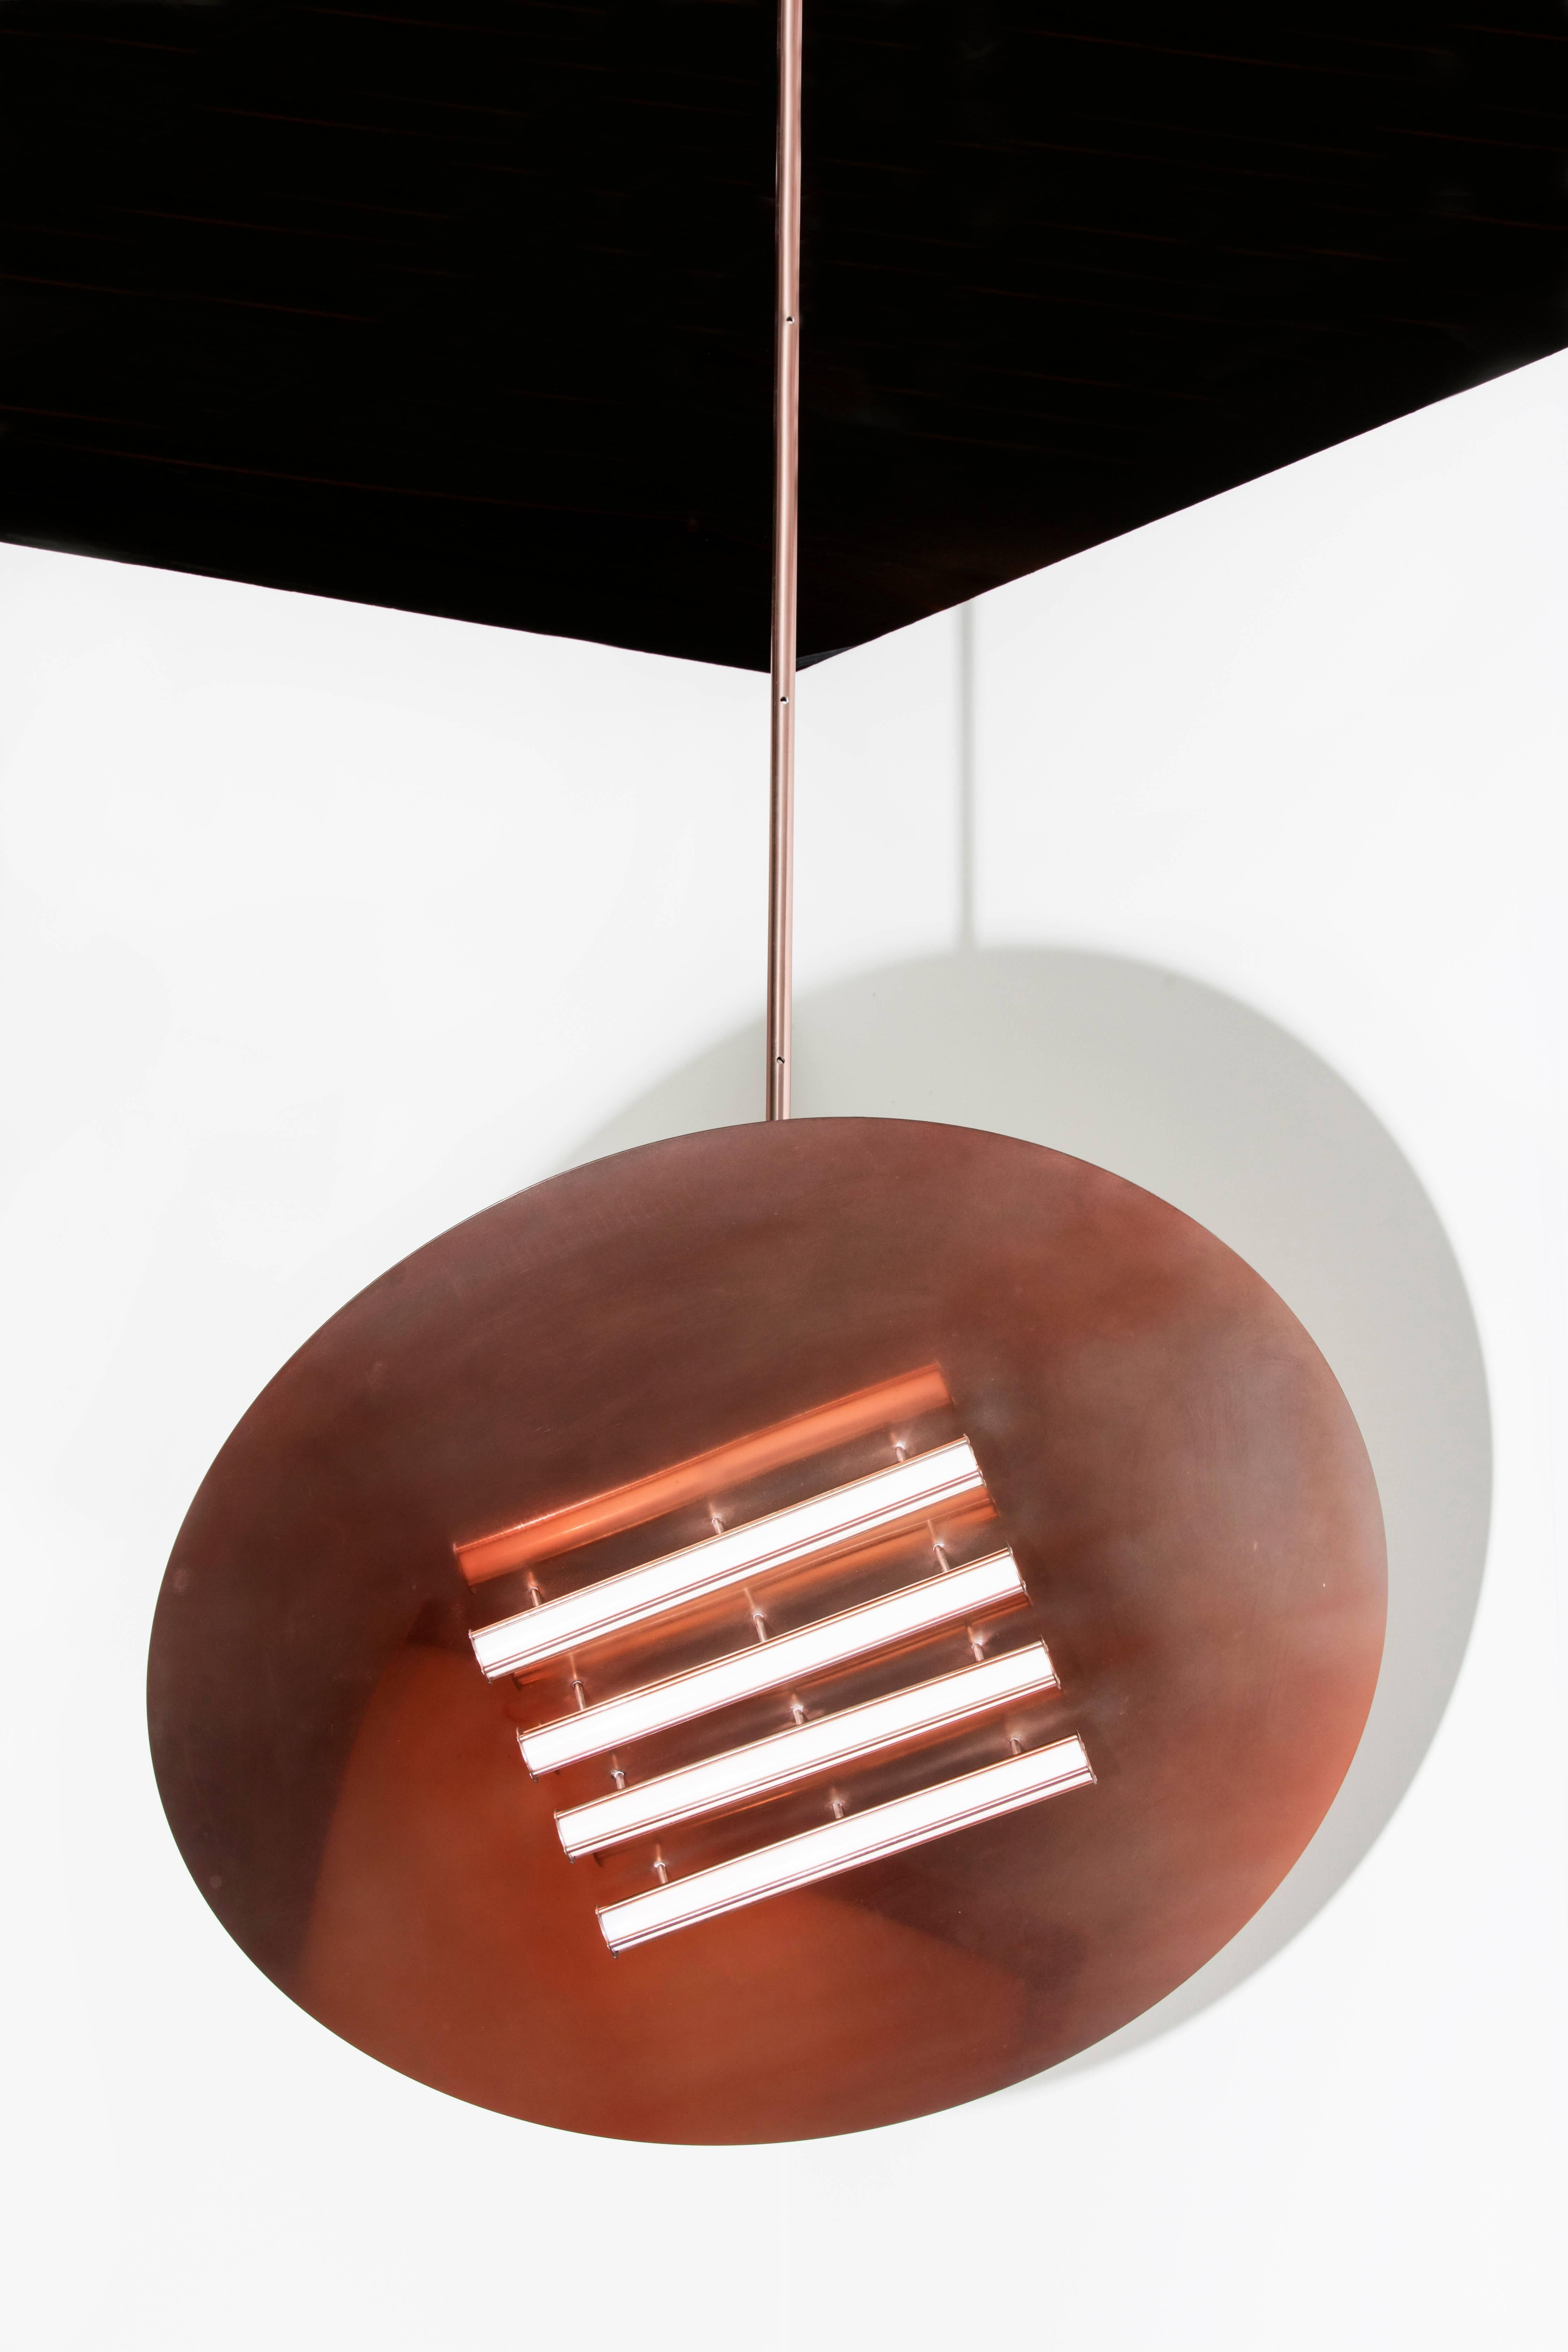 crosby collection large pendant light. Heating LED Lamp II Chandelier Pendant Light In Painted Steel For Sale At 1stdibs Crosby Collection Large